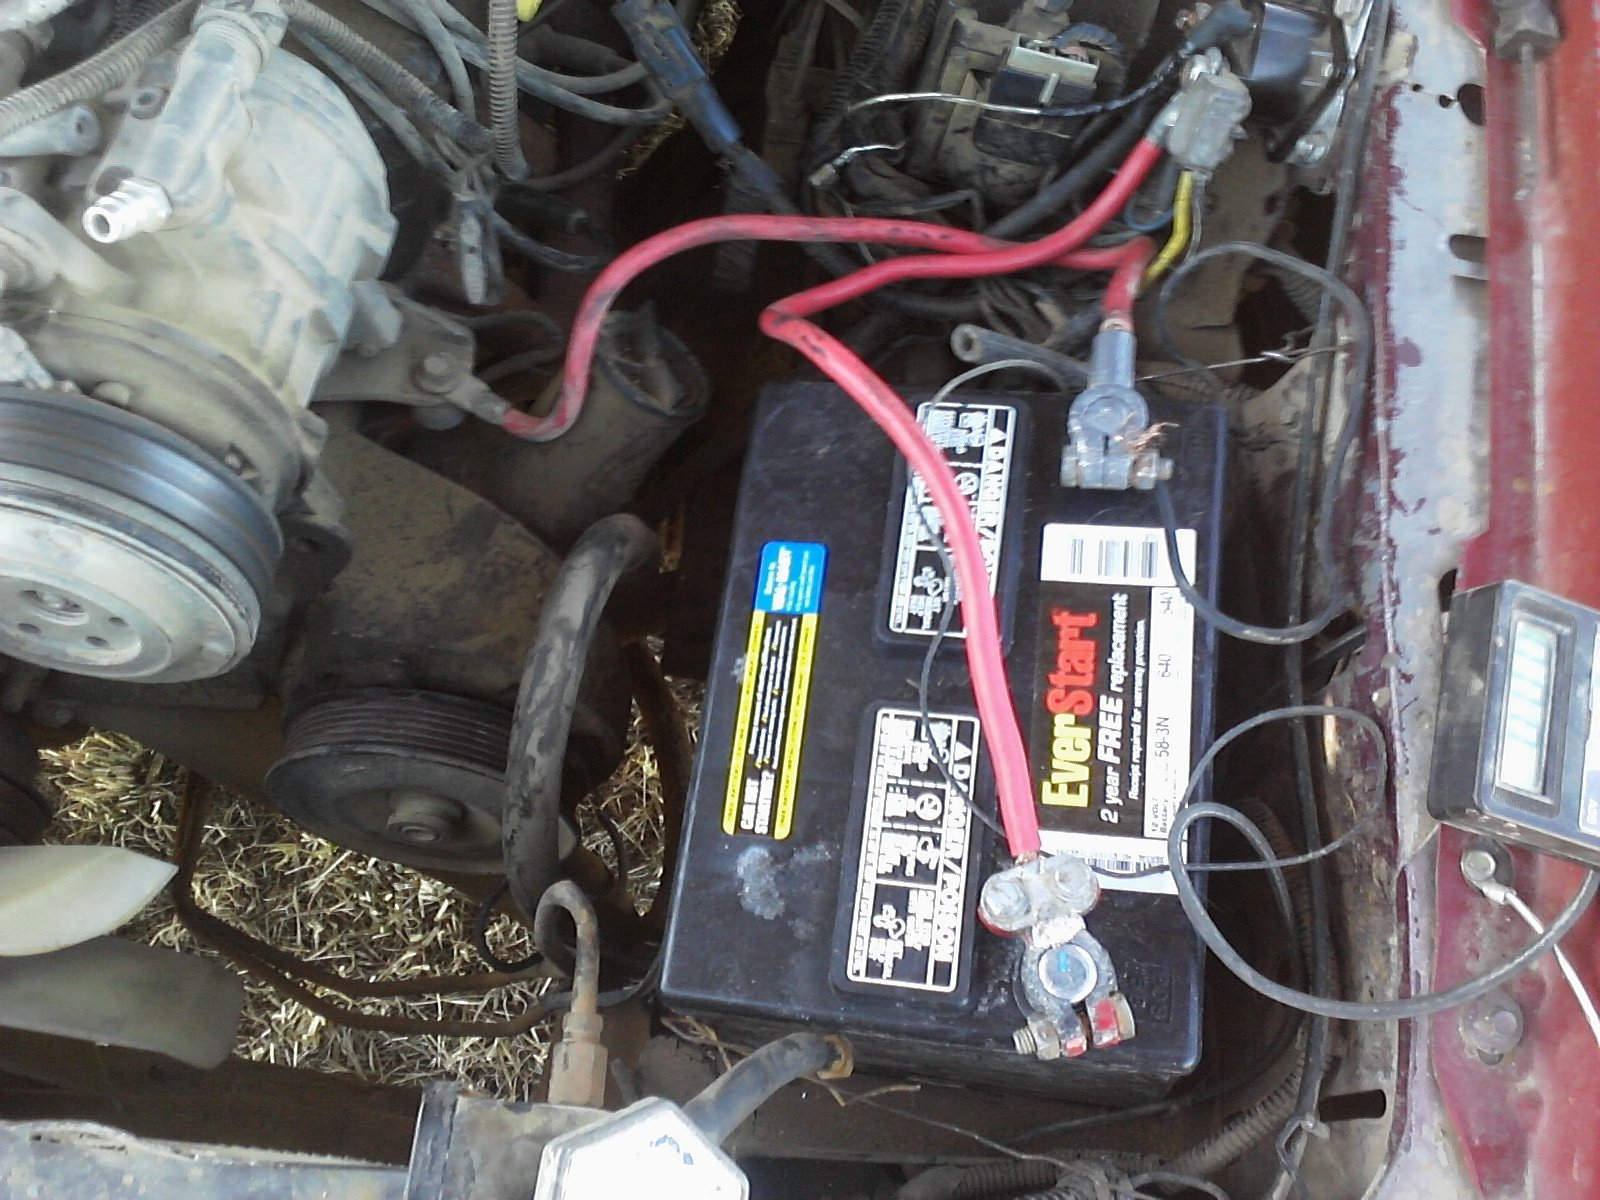 D Mustang Gt Starter Solenoid Issues Please Help Me My Only Working Car B